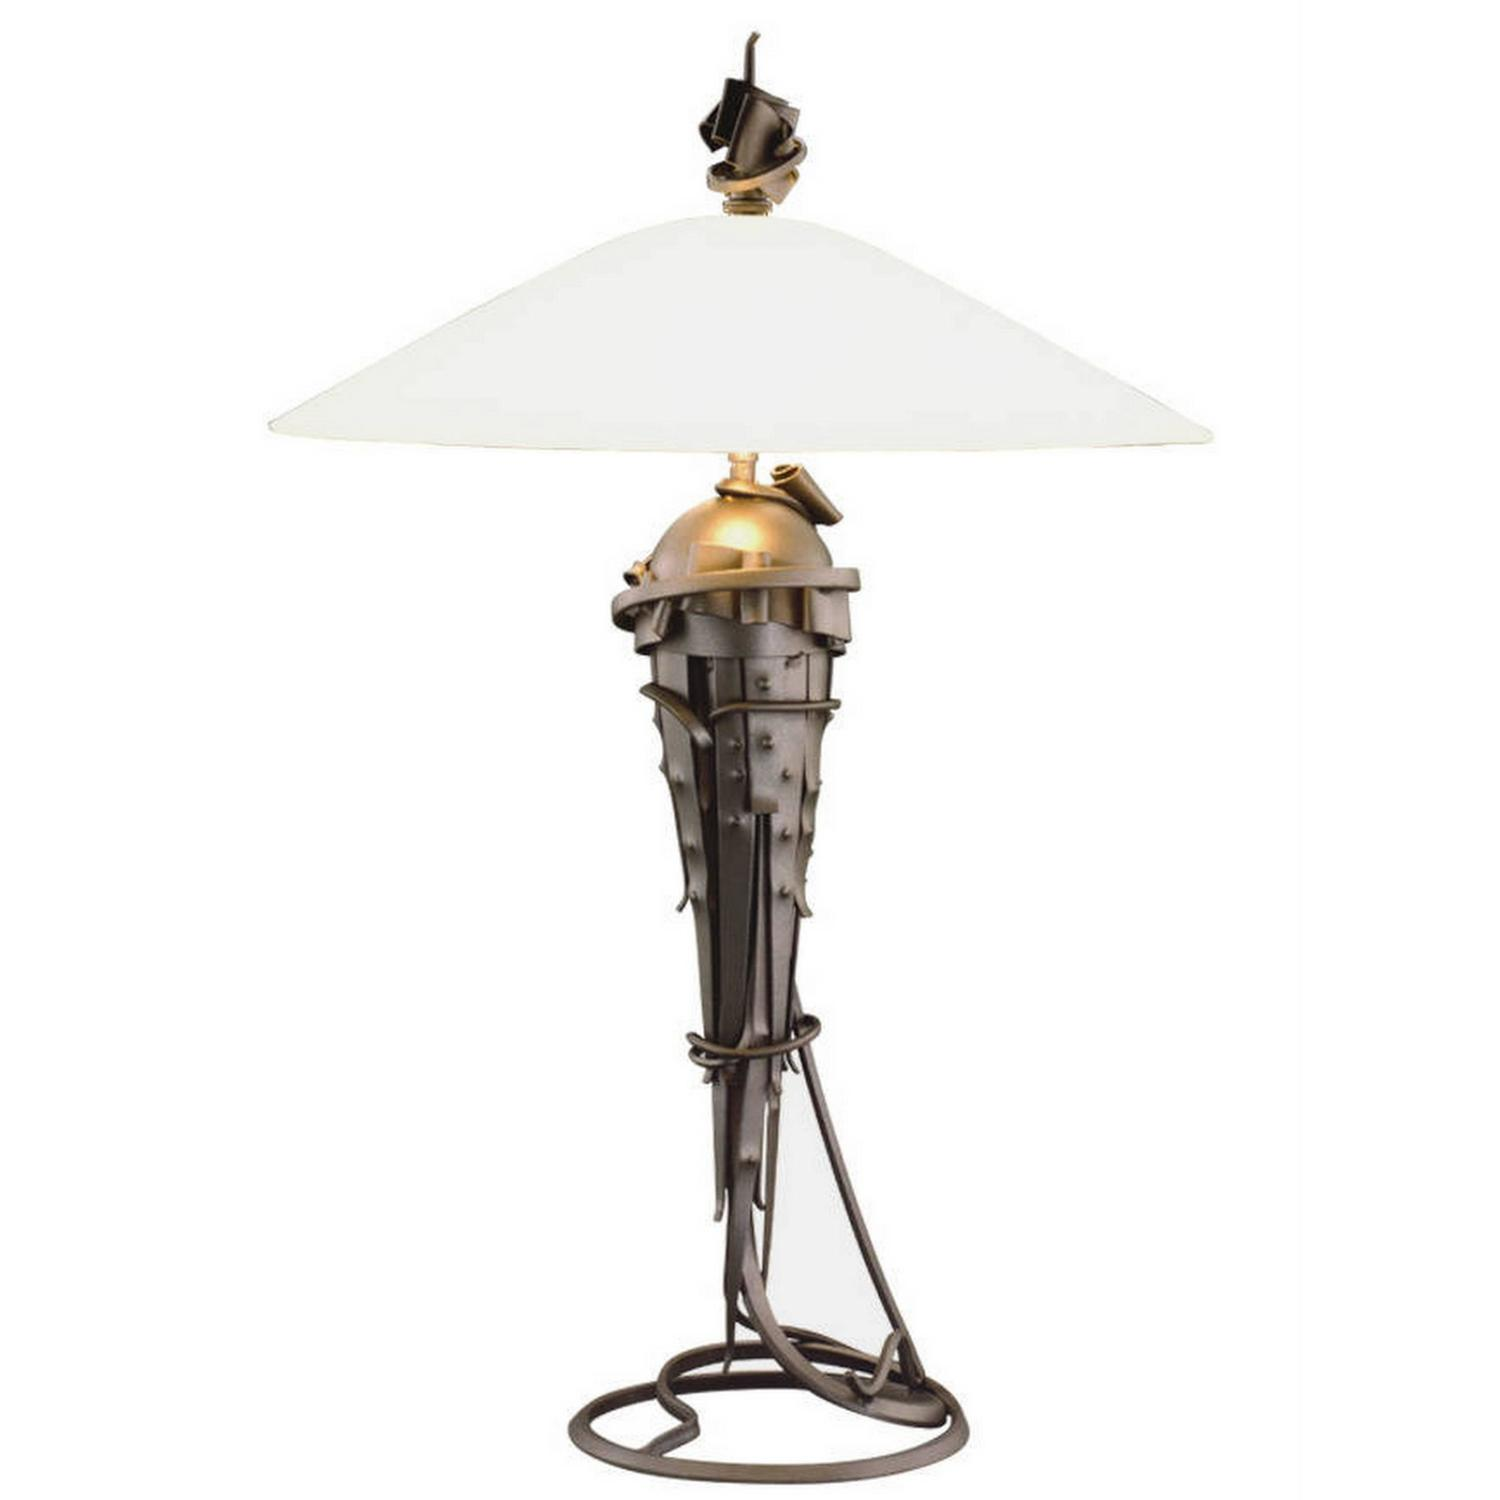 Albert paley small comet table lamp metal and glass for Jill alberts jewelry highland park